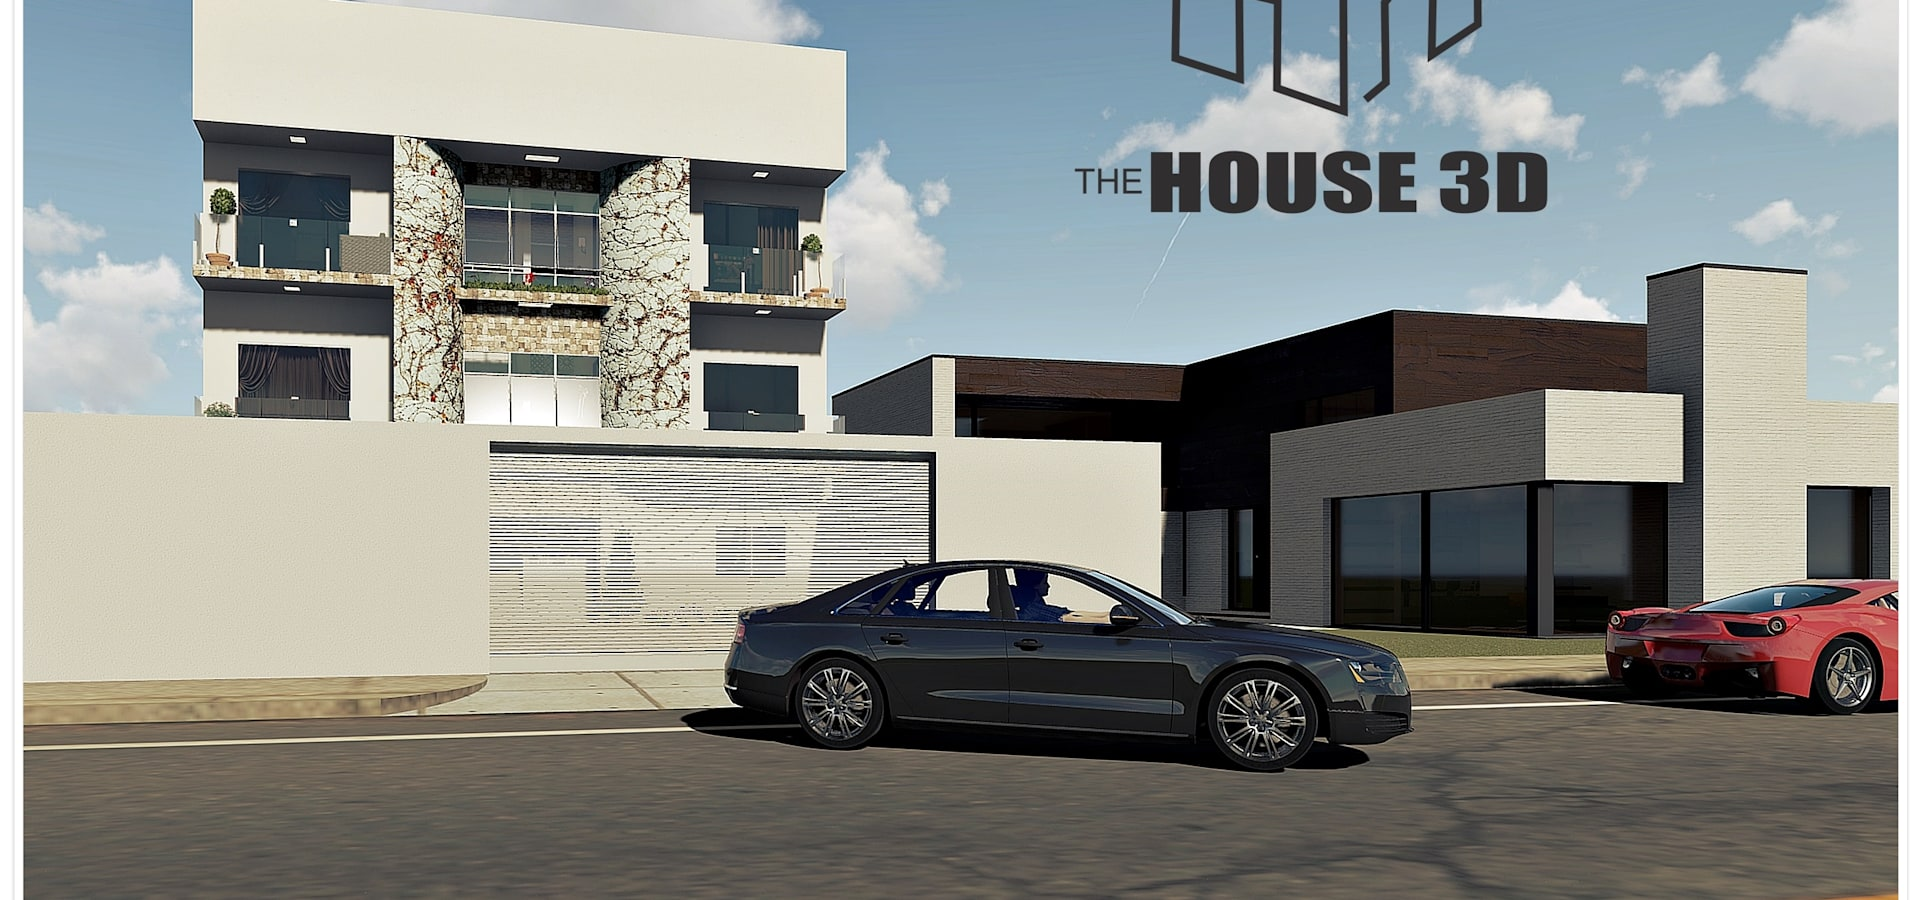 TheHouse3D